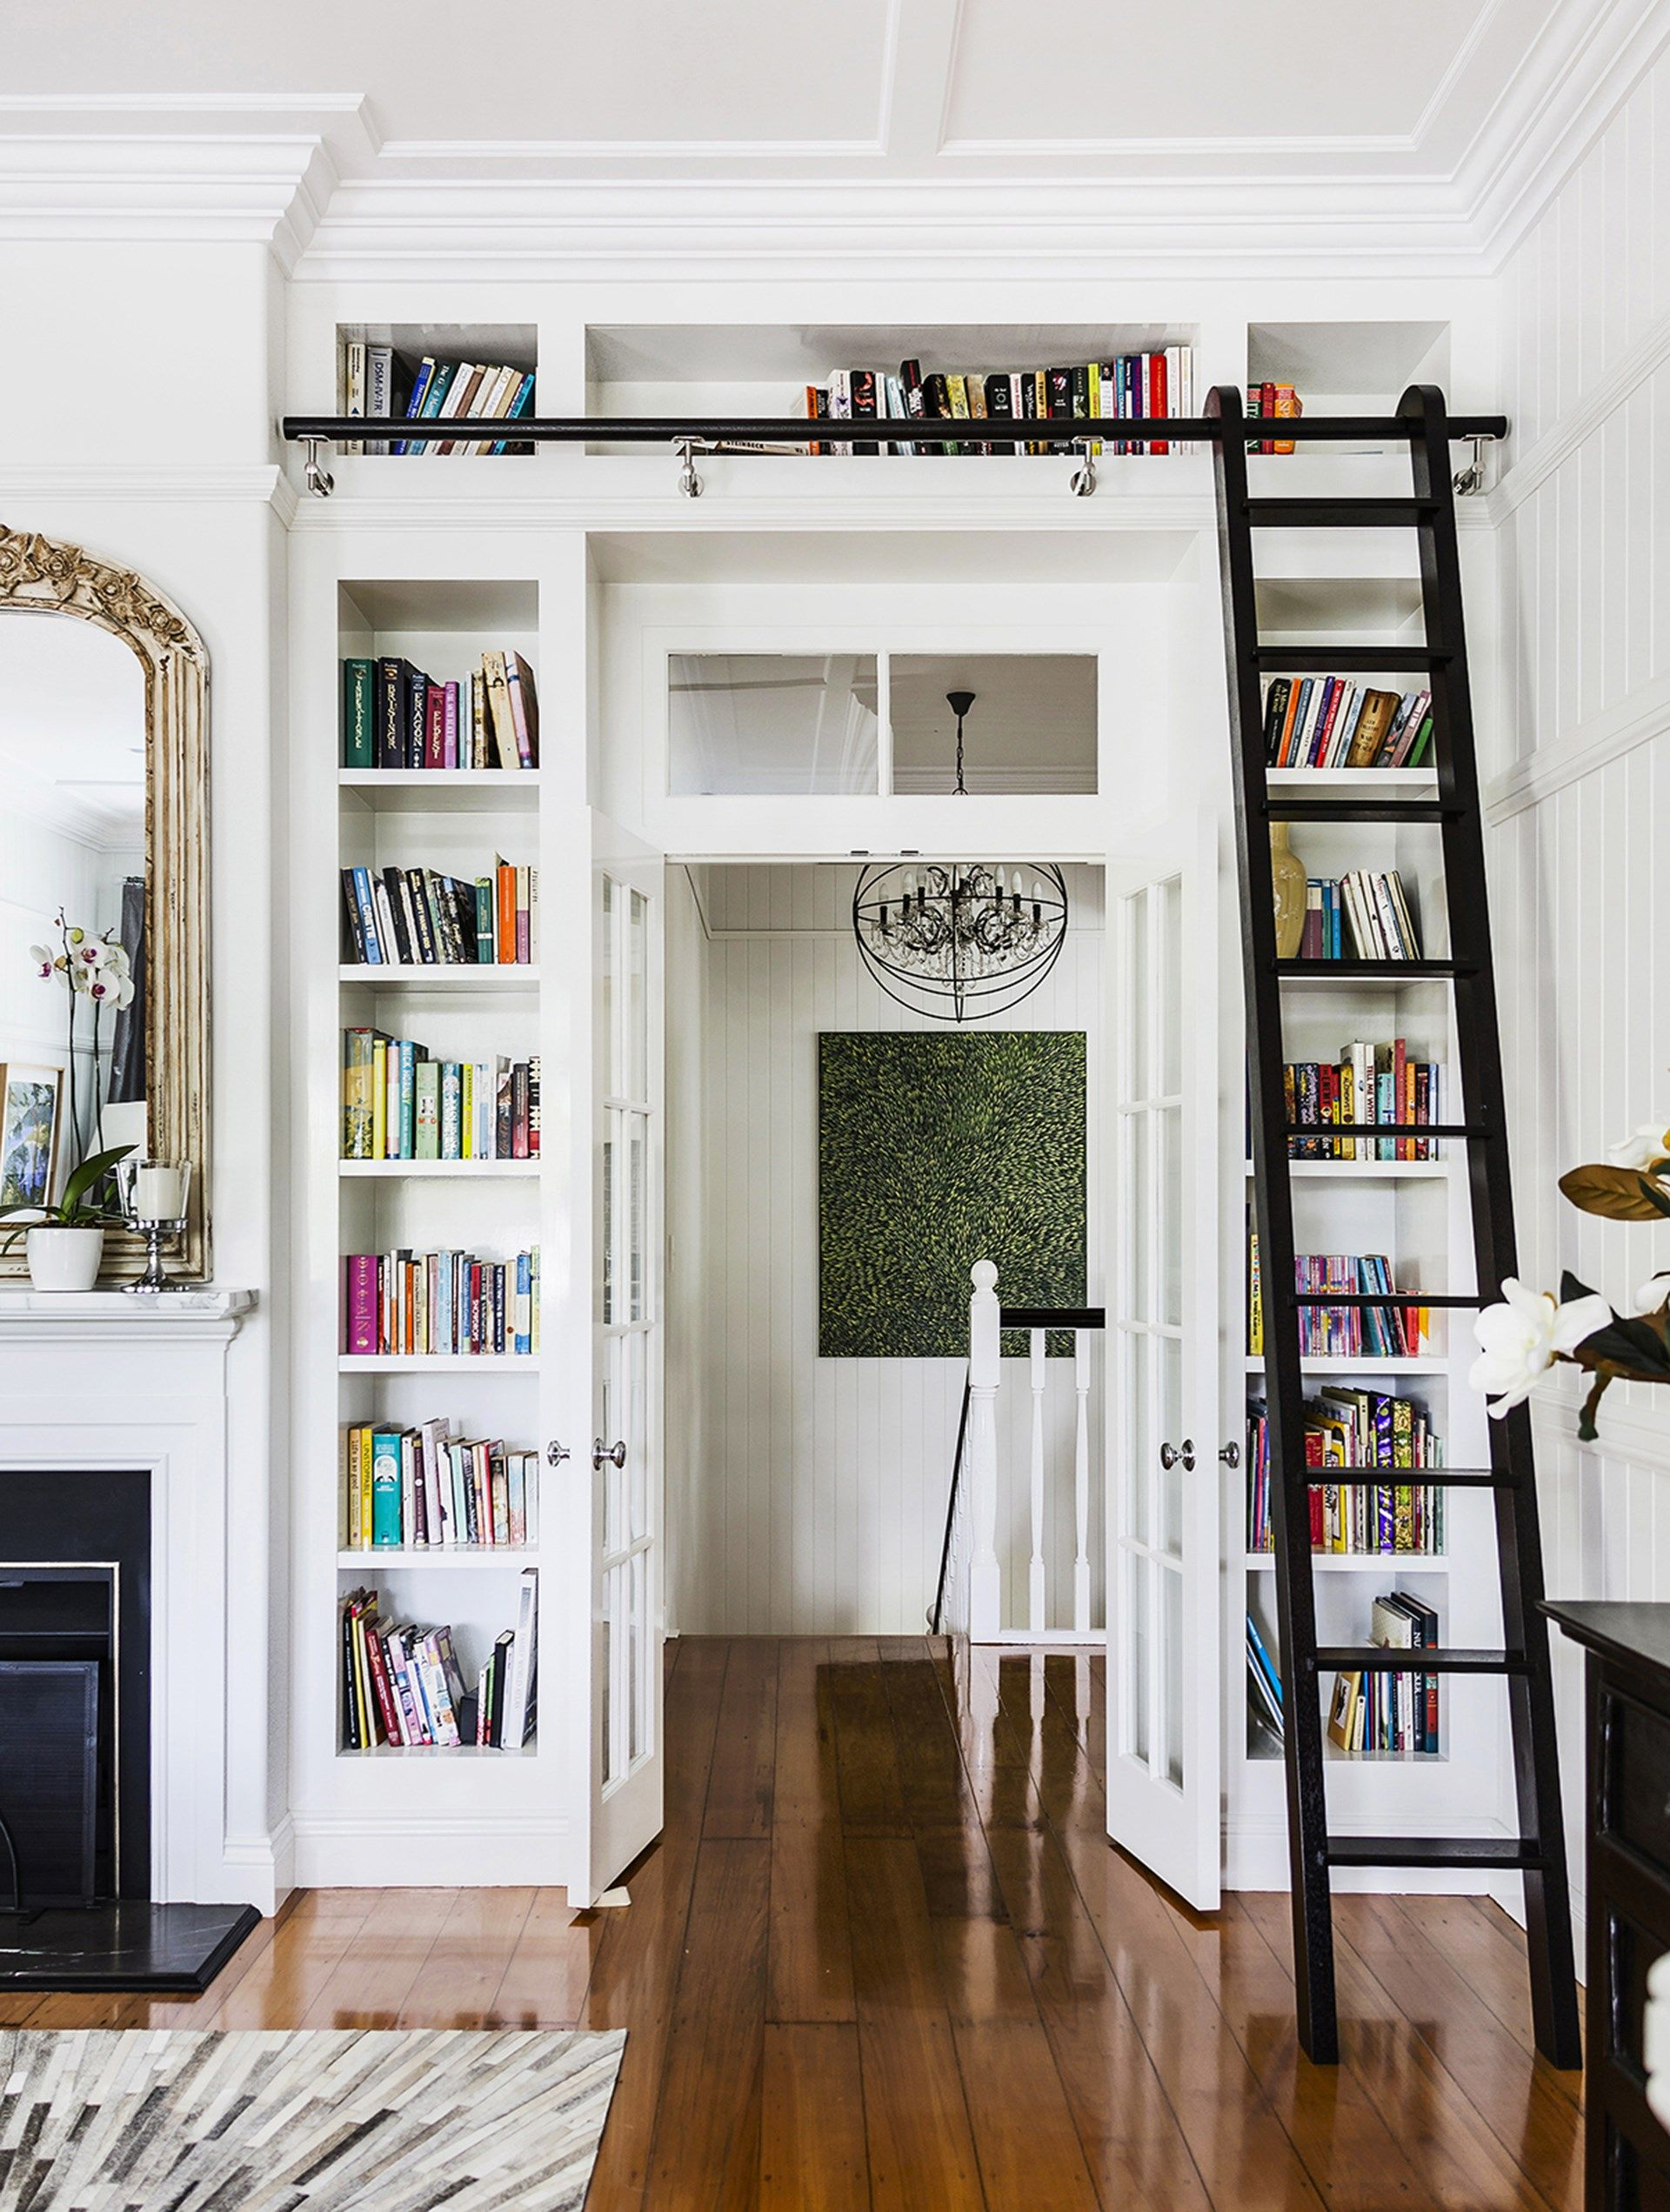 8 home libraries that will make every bookworm weak at the knees ...